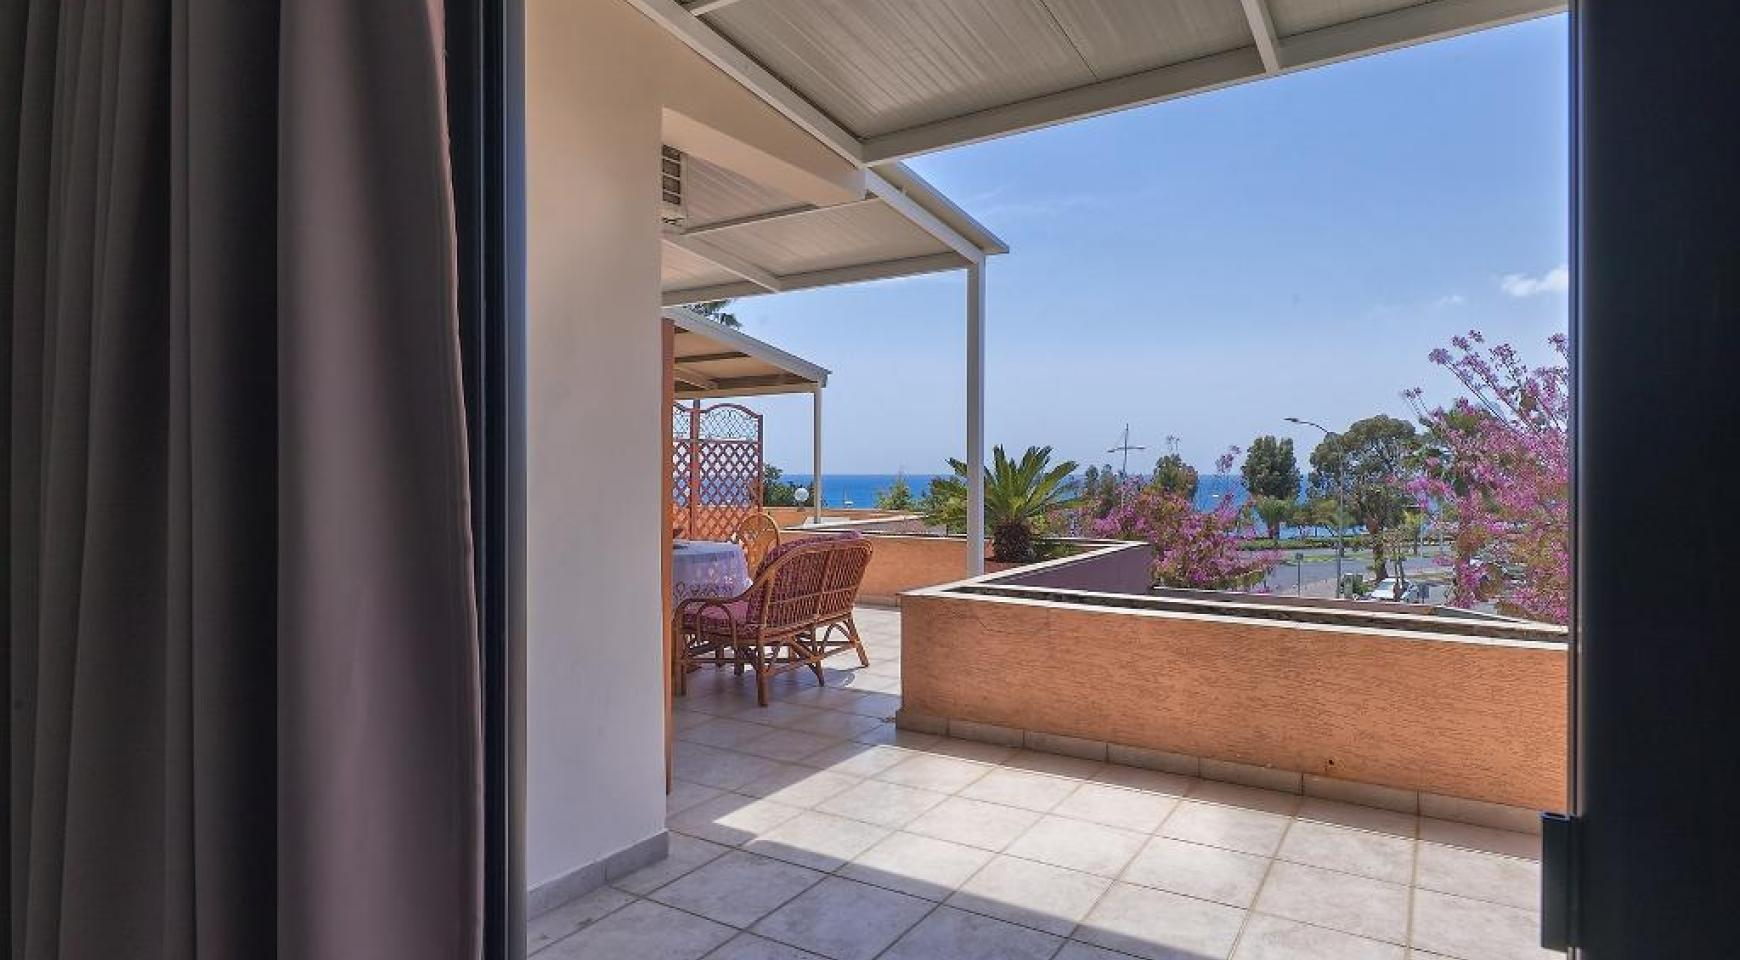 Spacious One Bedroom Apartment Bahus 107 by the Sea - 8